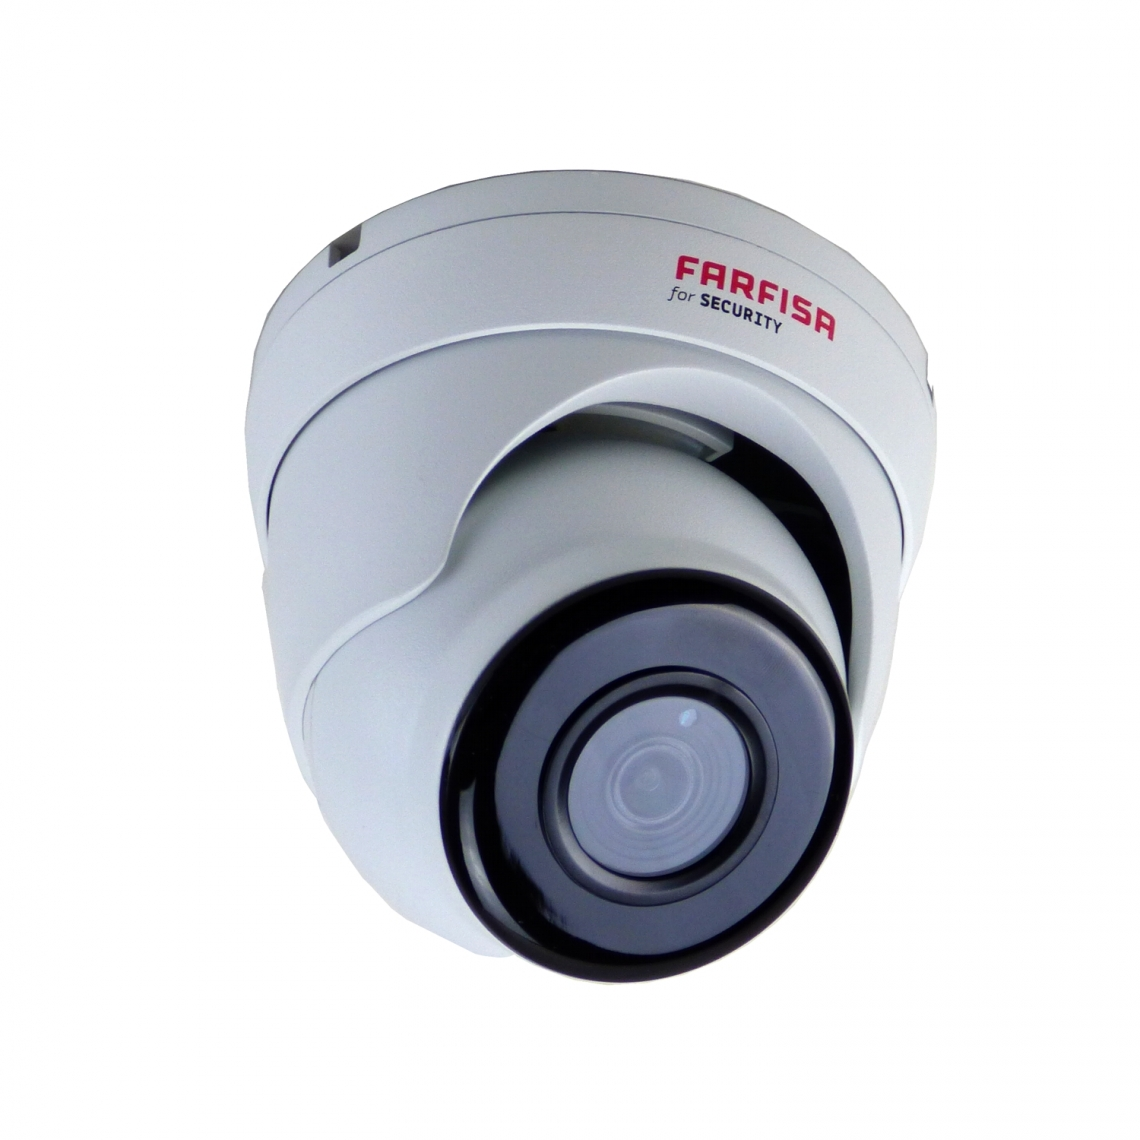 5MP MINI DOME AHD CAMERA - TVT73FAHD/5